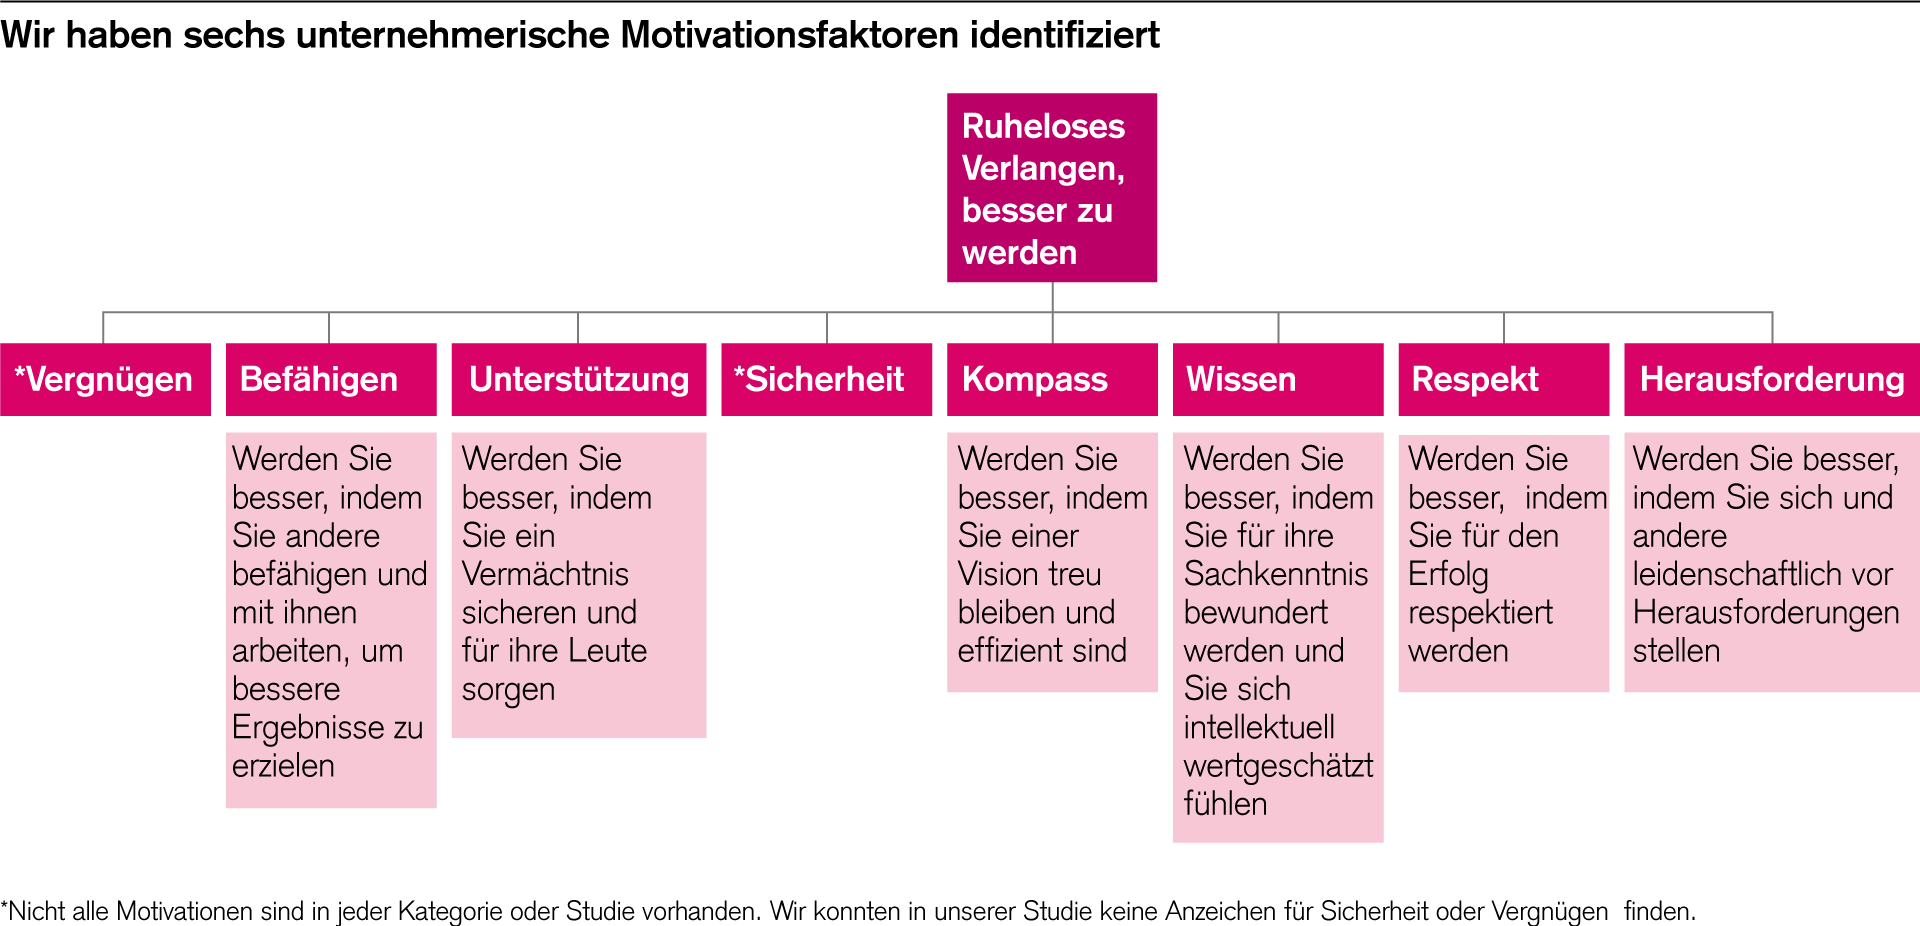 Die sechs Motivationsfaktoren